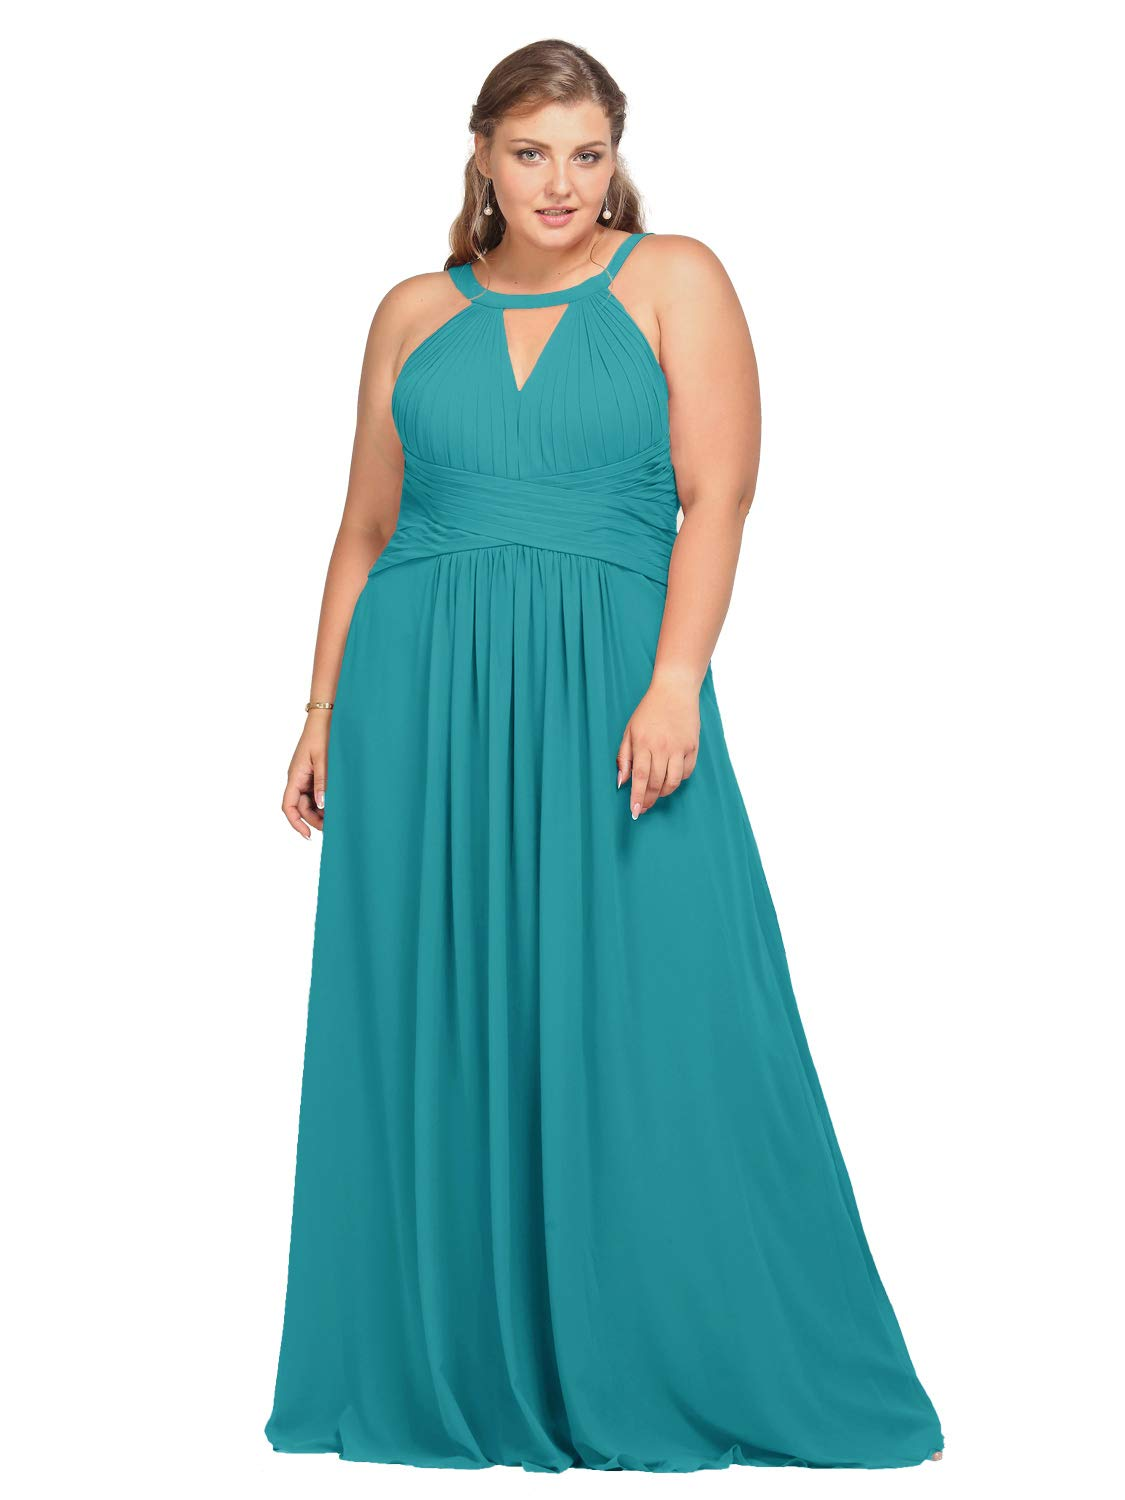 Alicepub Plus Size Bridesmaid Dress Chiffon Long Formal Evening Prom Gown  for Wedding Maxi, Turquoise, US20